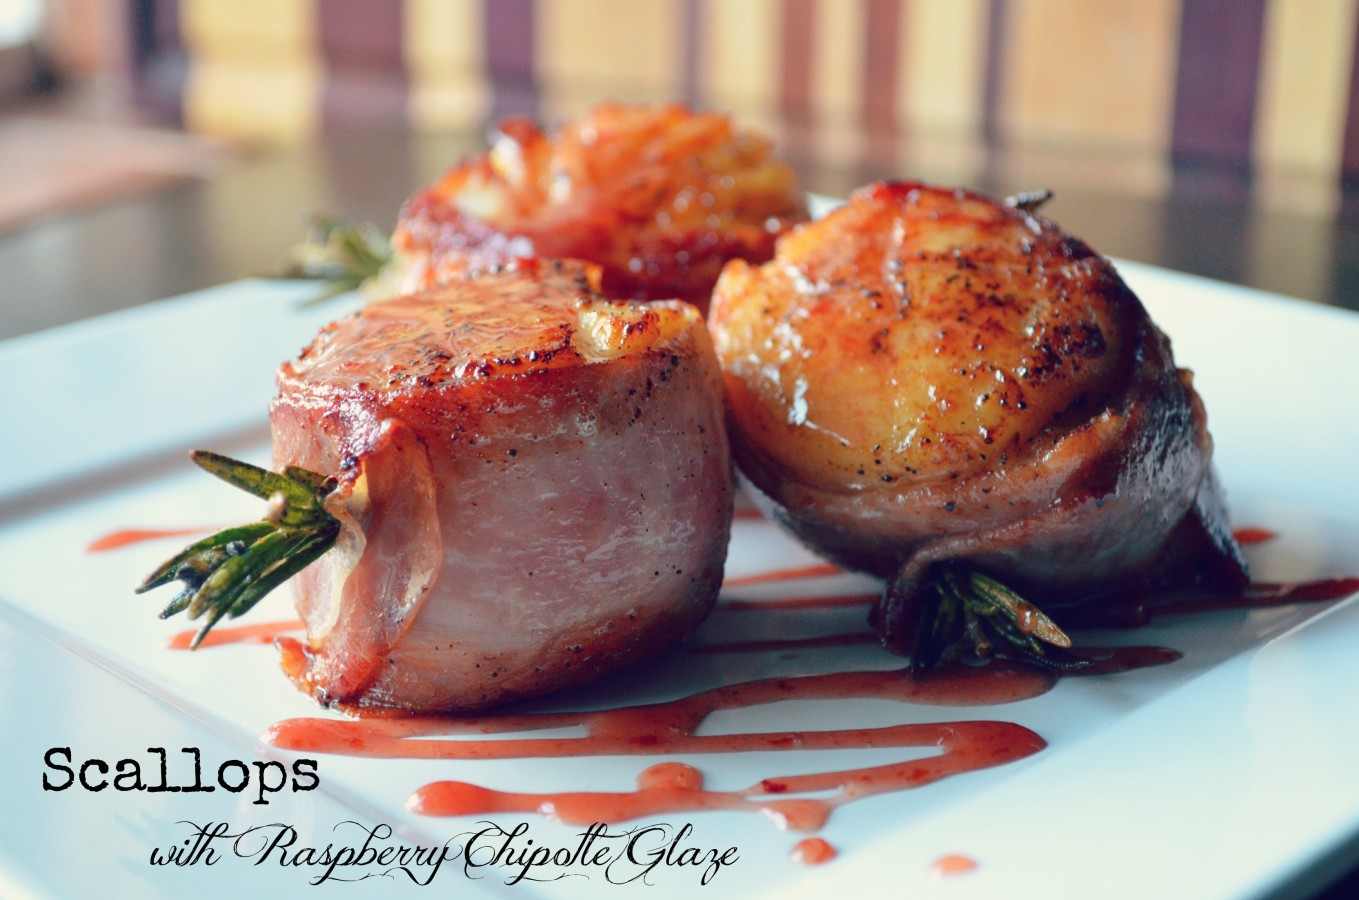 Scallops with a Raspberry Chipotle Glaze